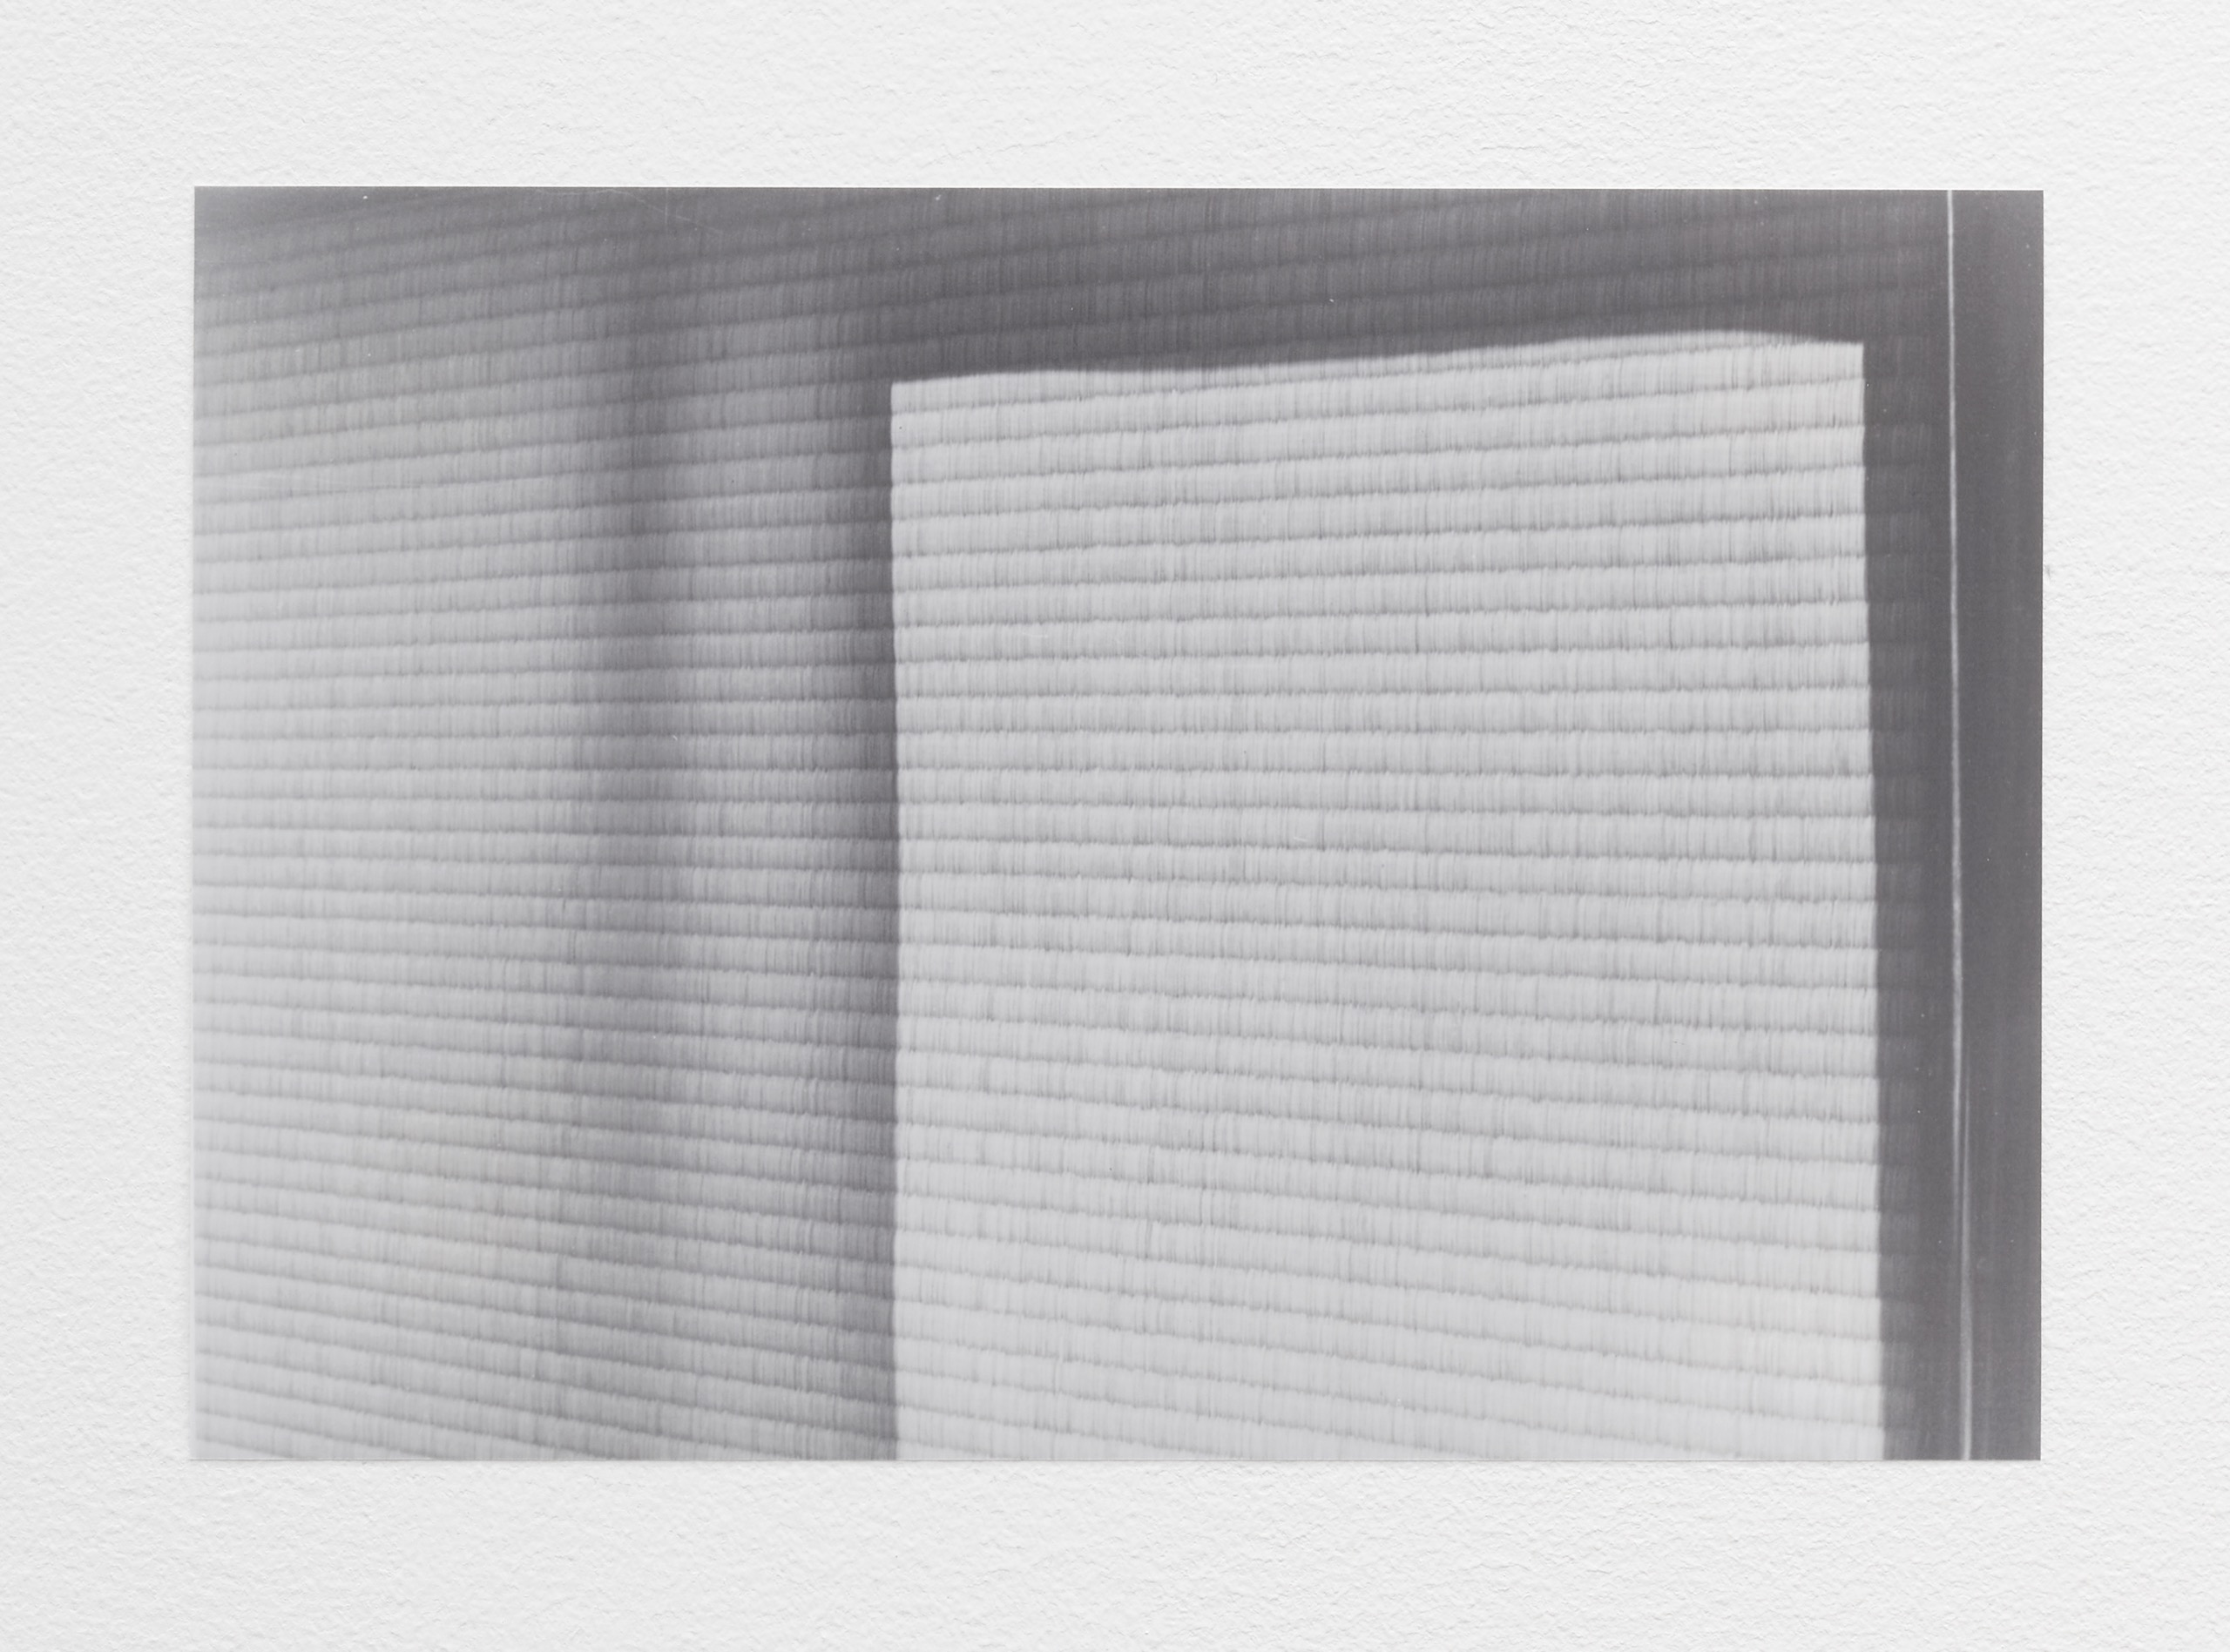 Theresa Hak Kyung Cha, from Exilee (Photographs), 1980, Black and white photographs